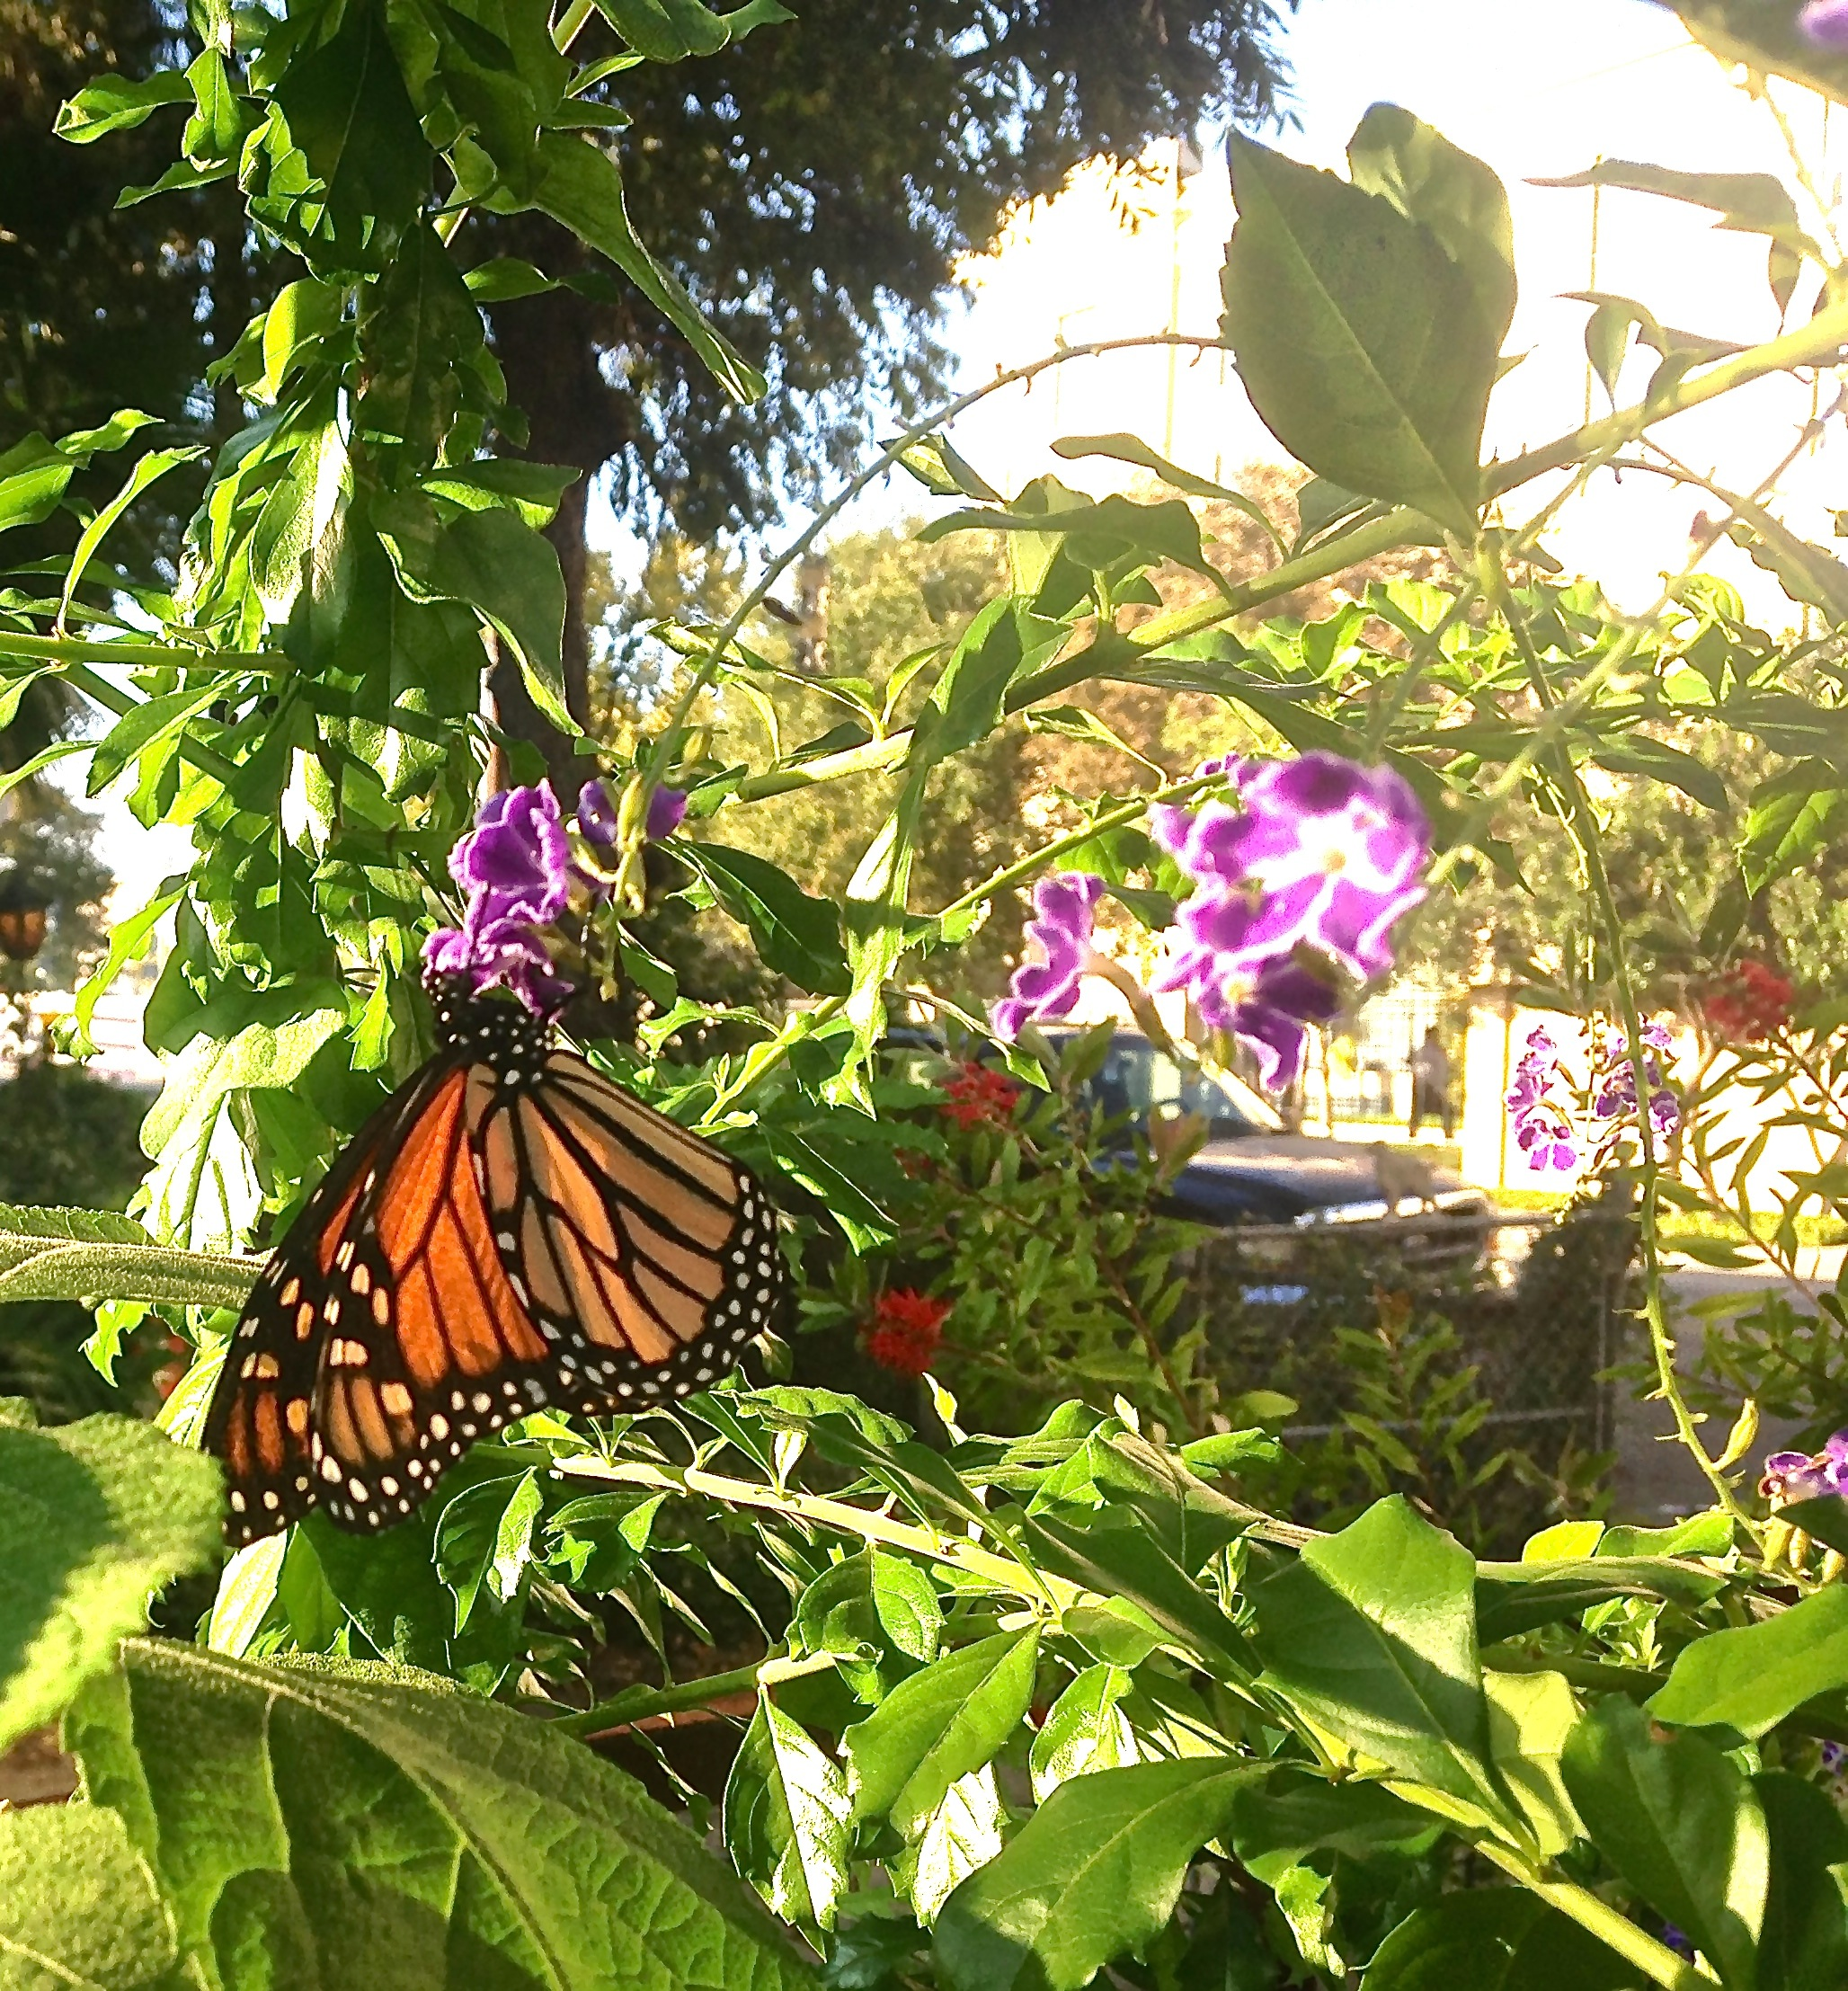 New Study: Nectar Plants More Important Than Milkweed For Monarch Butterfly  Migration | Texasbutterflyranch